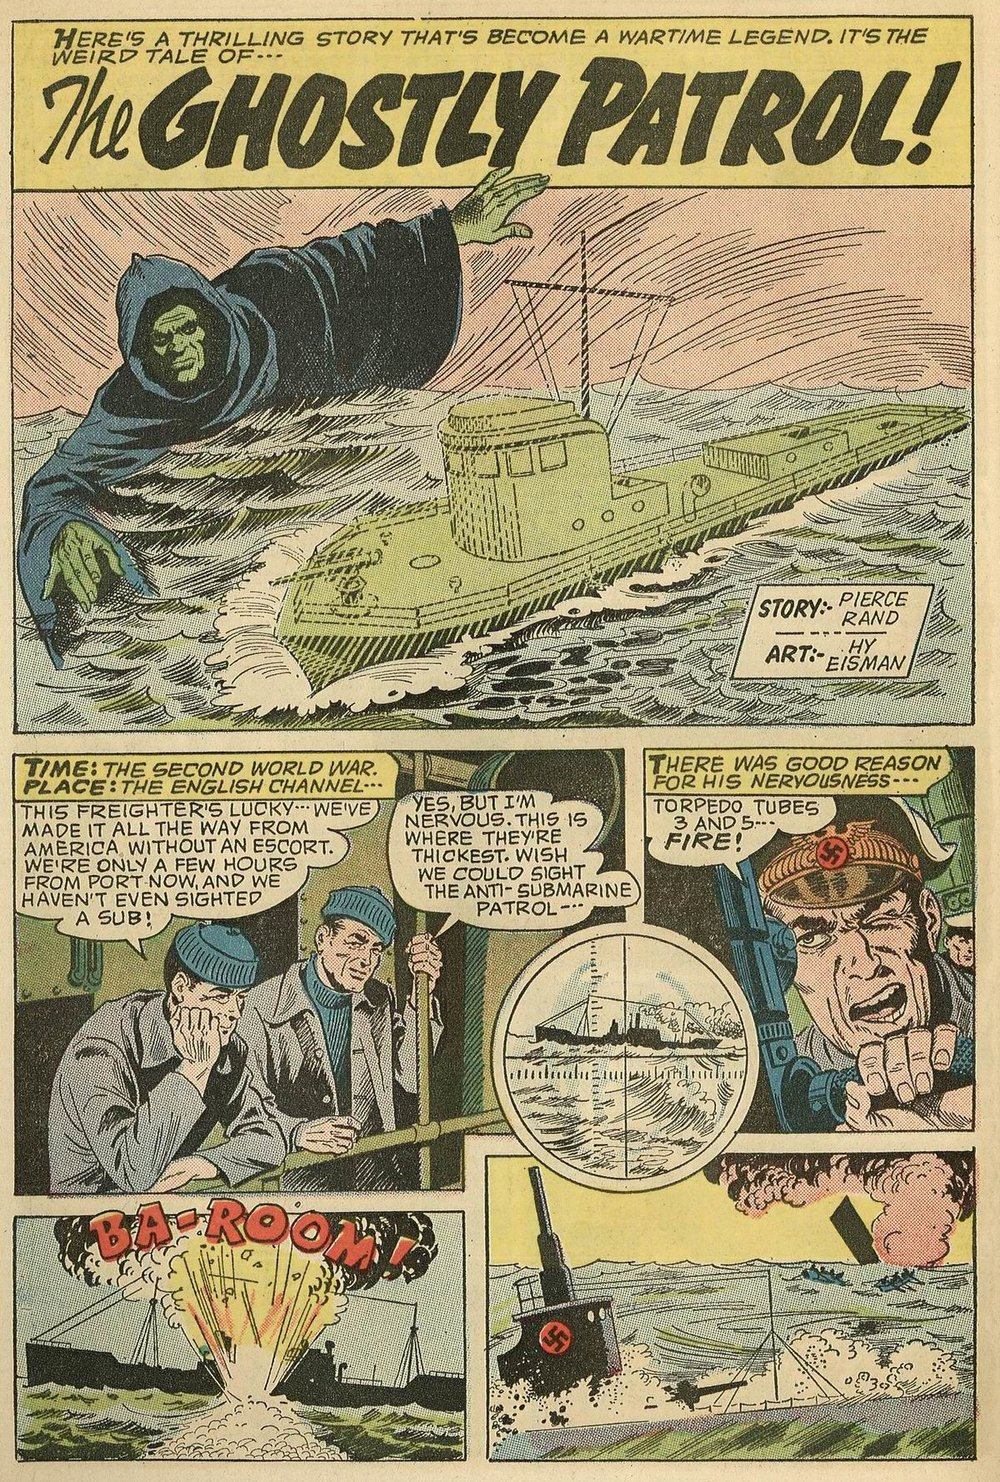 Adventures Into the Unknown (1948) #152 pg.20, art by Hy Eisman.